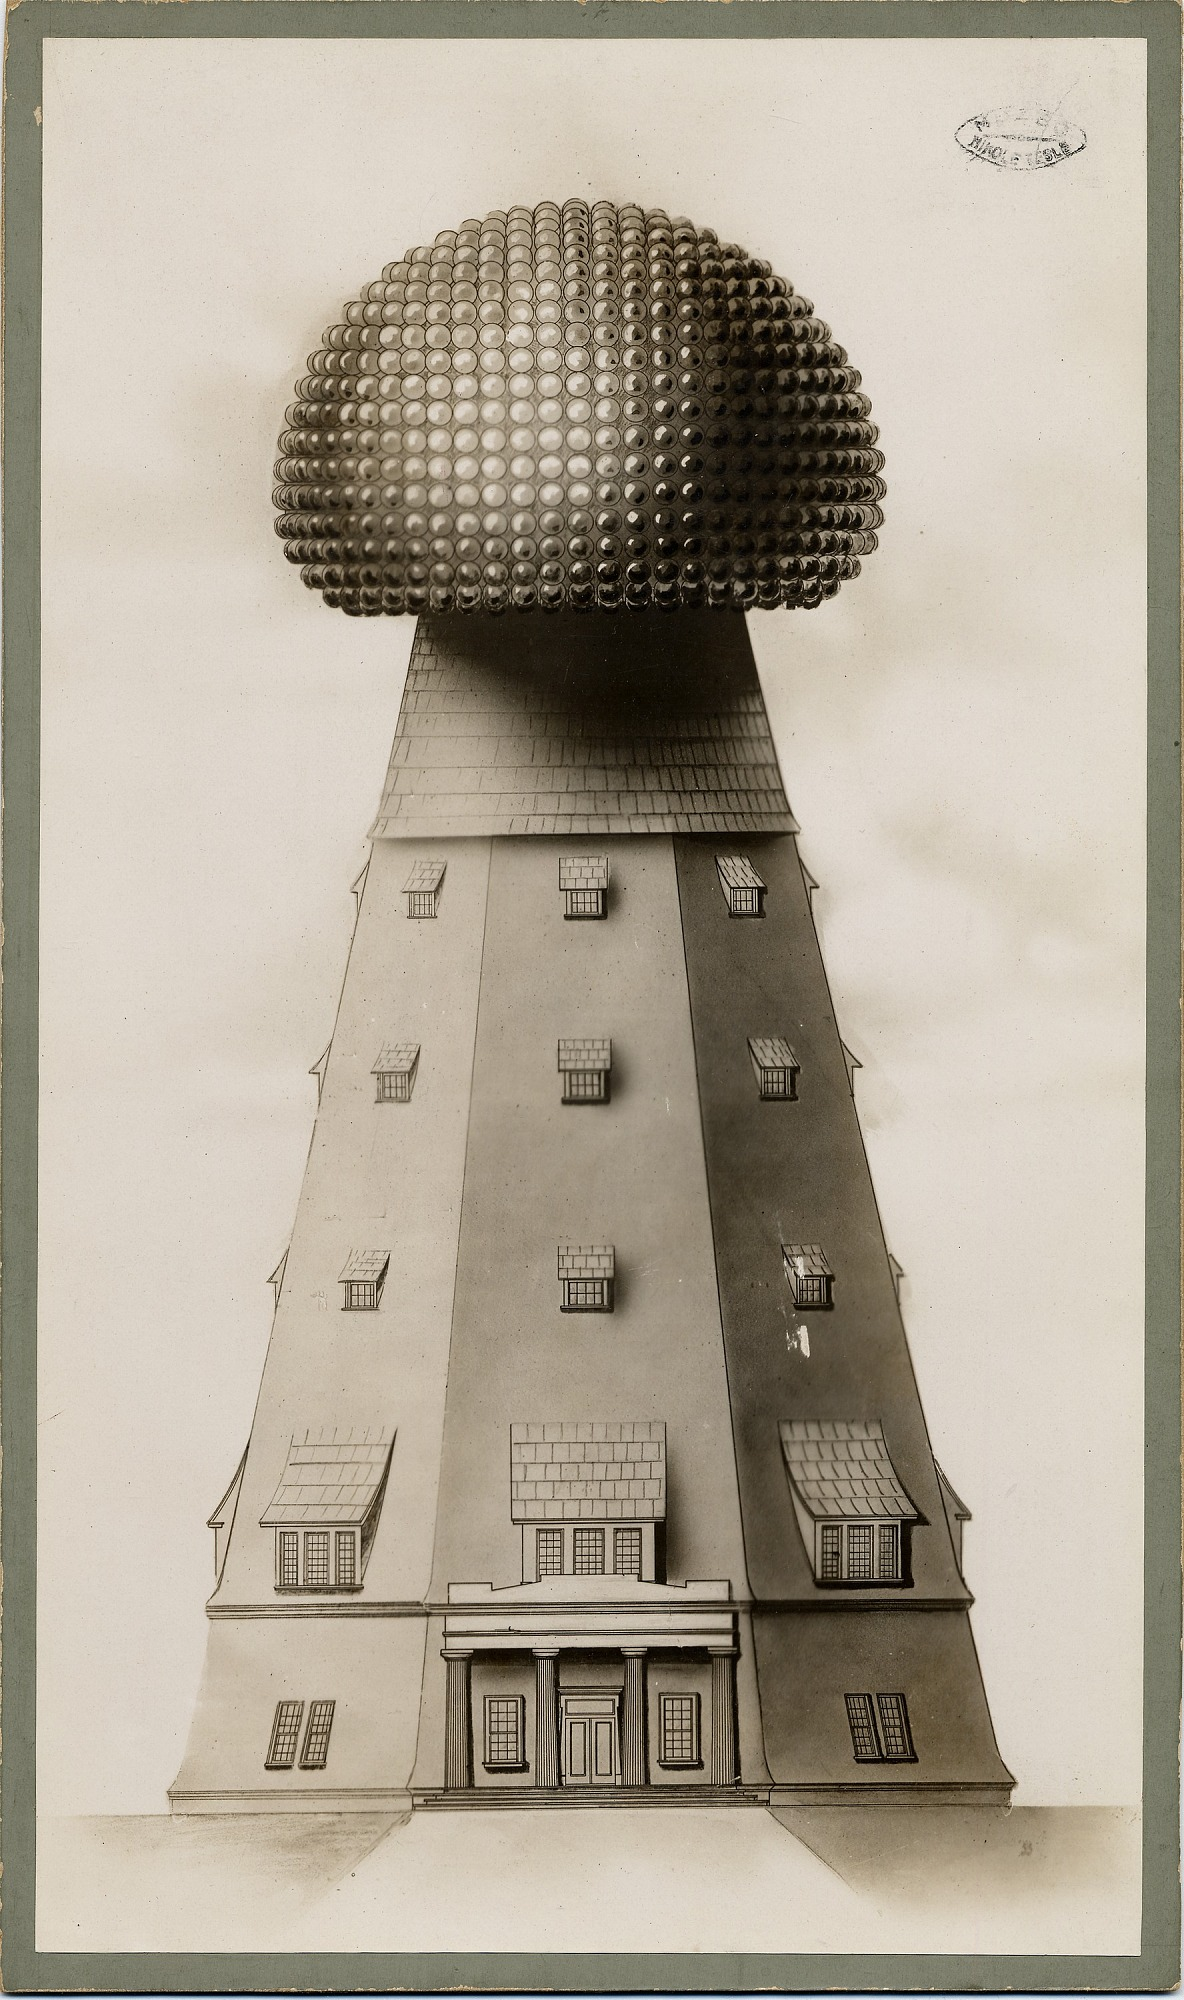 images for Illustration of Tesla's tower, Long Island laboratory, New York